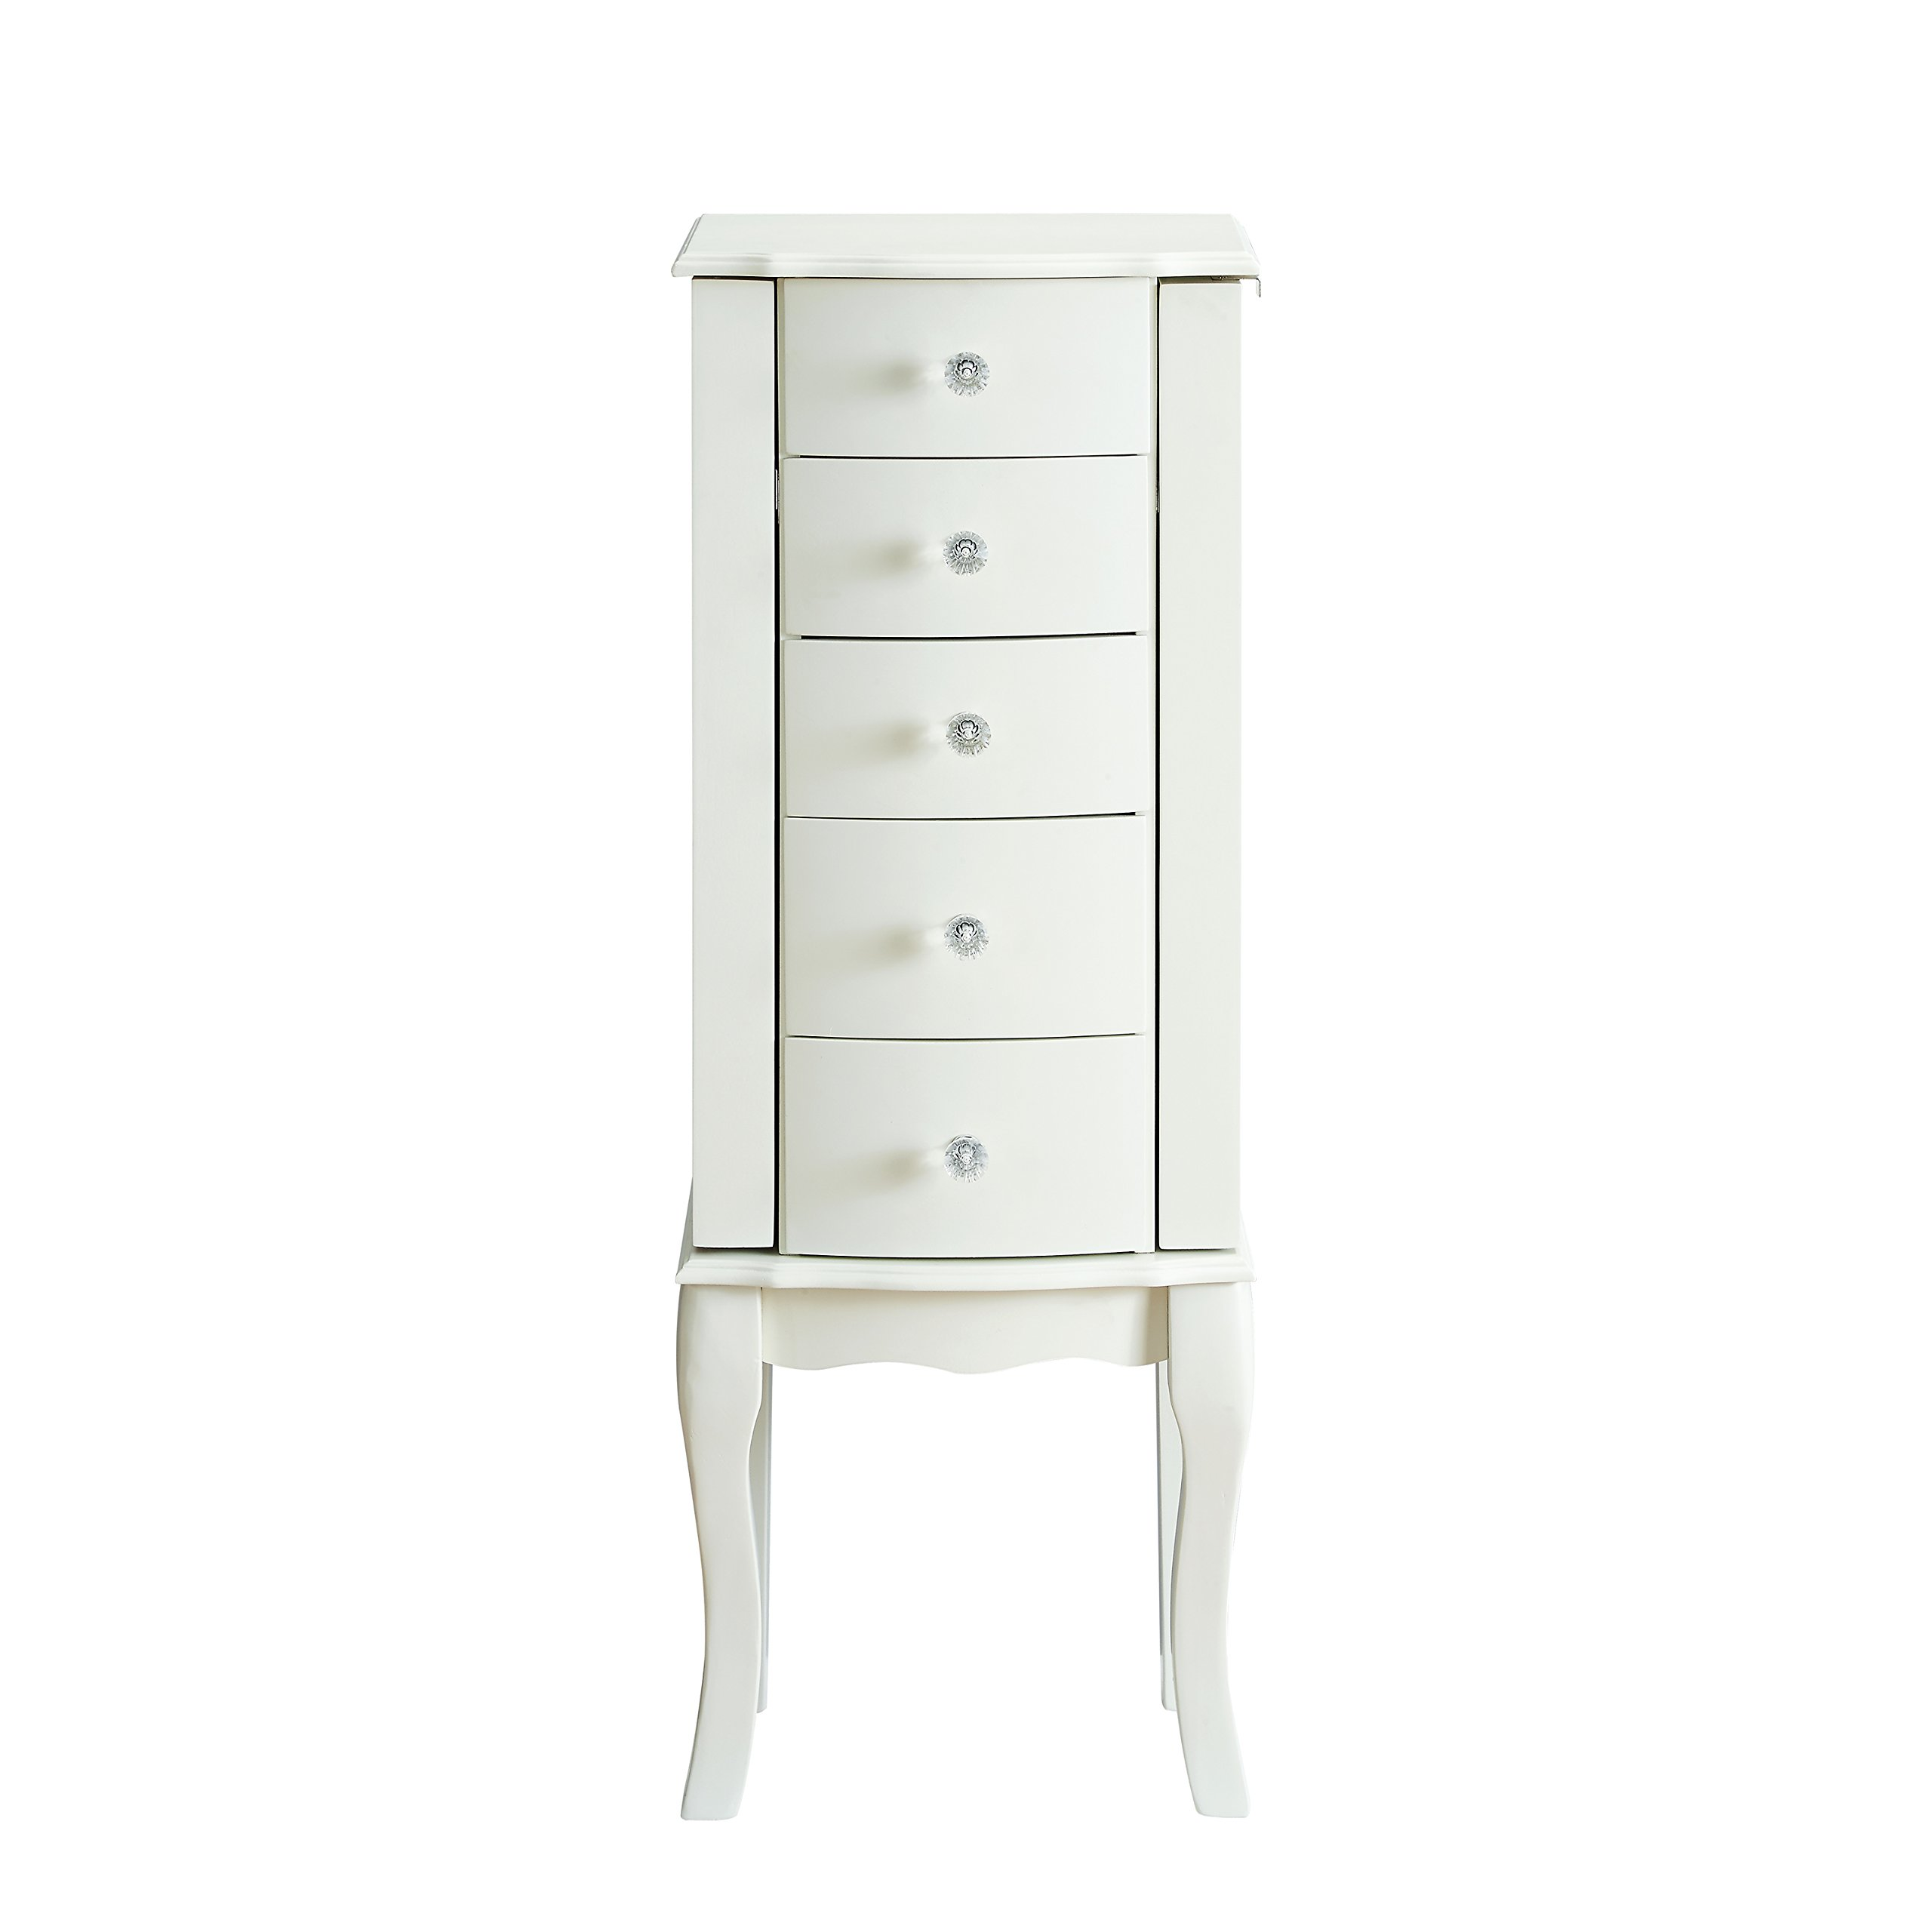 Powell Furniture Jewelry Armoire, White